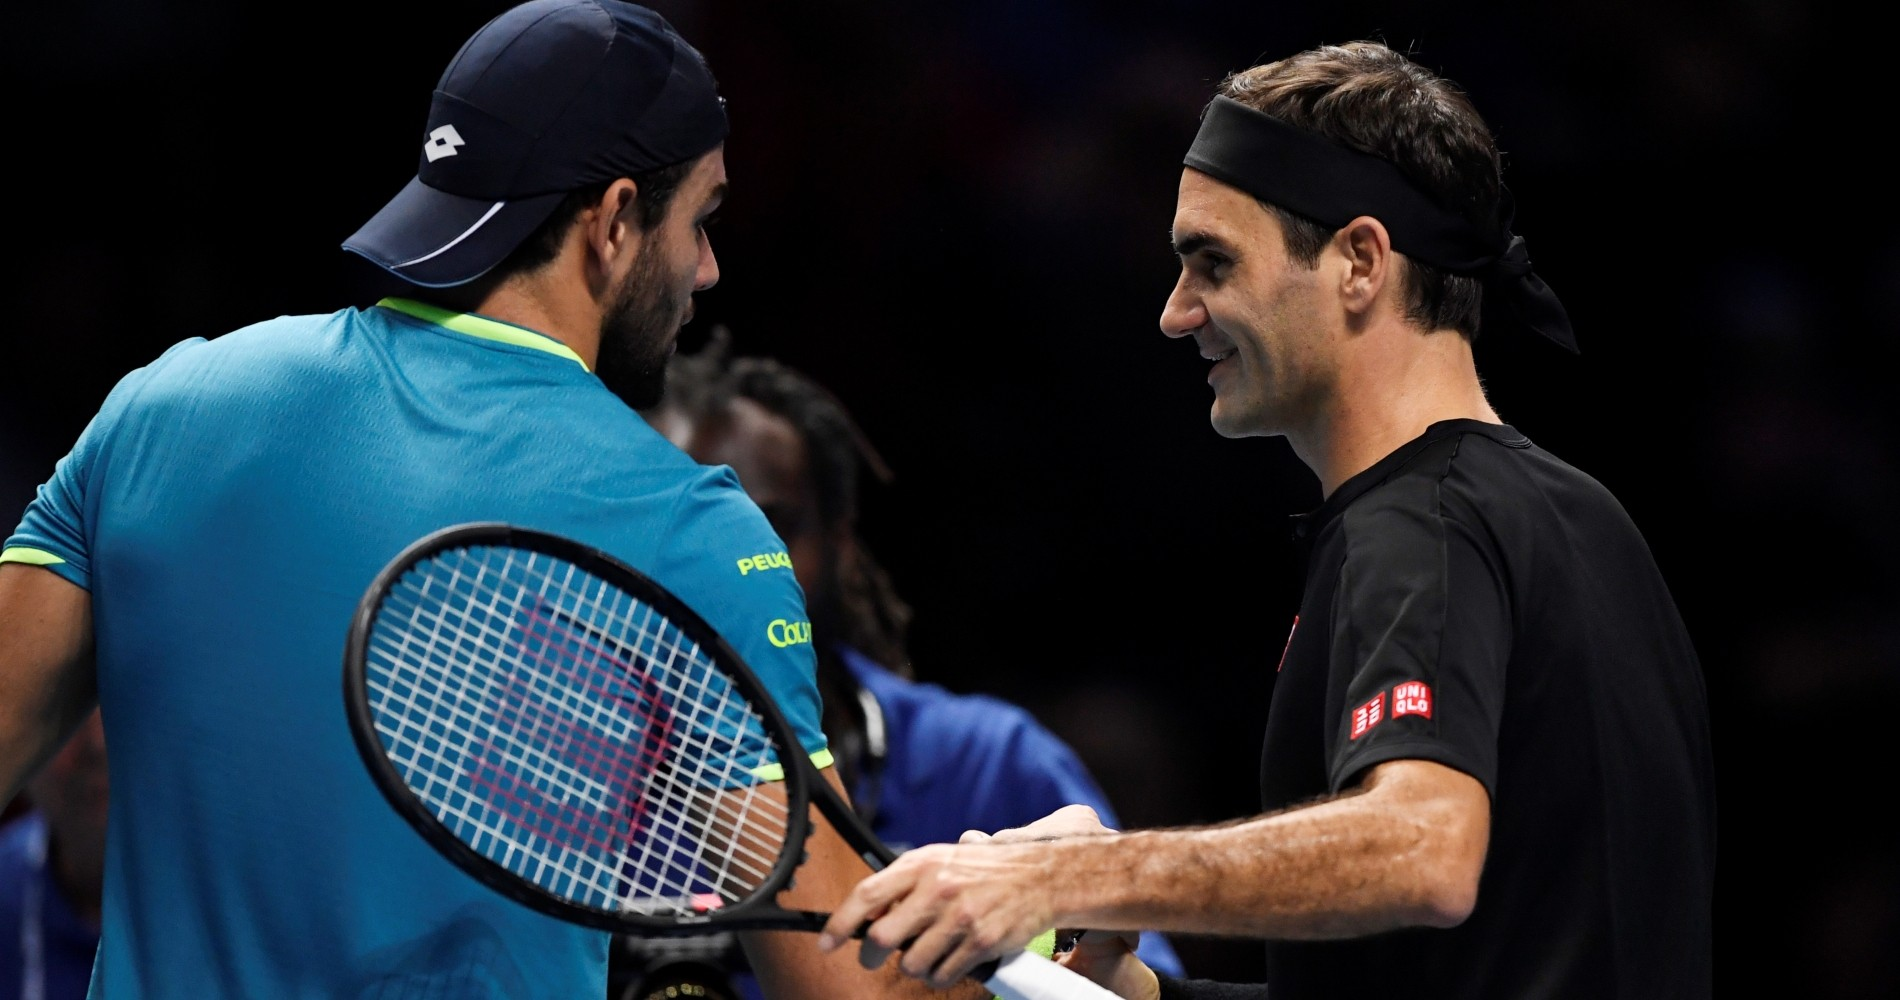 Matteo Berrettini and Roger Federer after their encounter at the 2019 ATP Nitto Finals